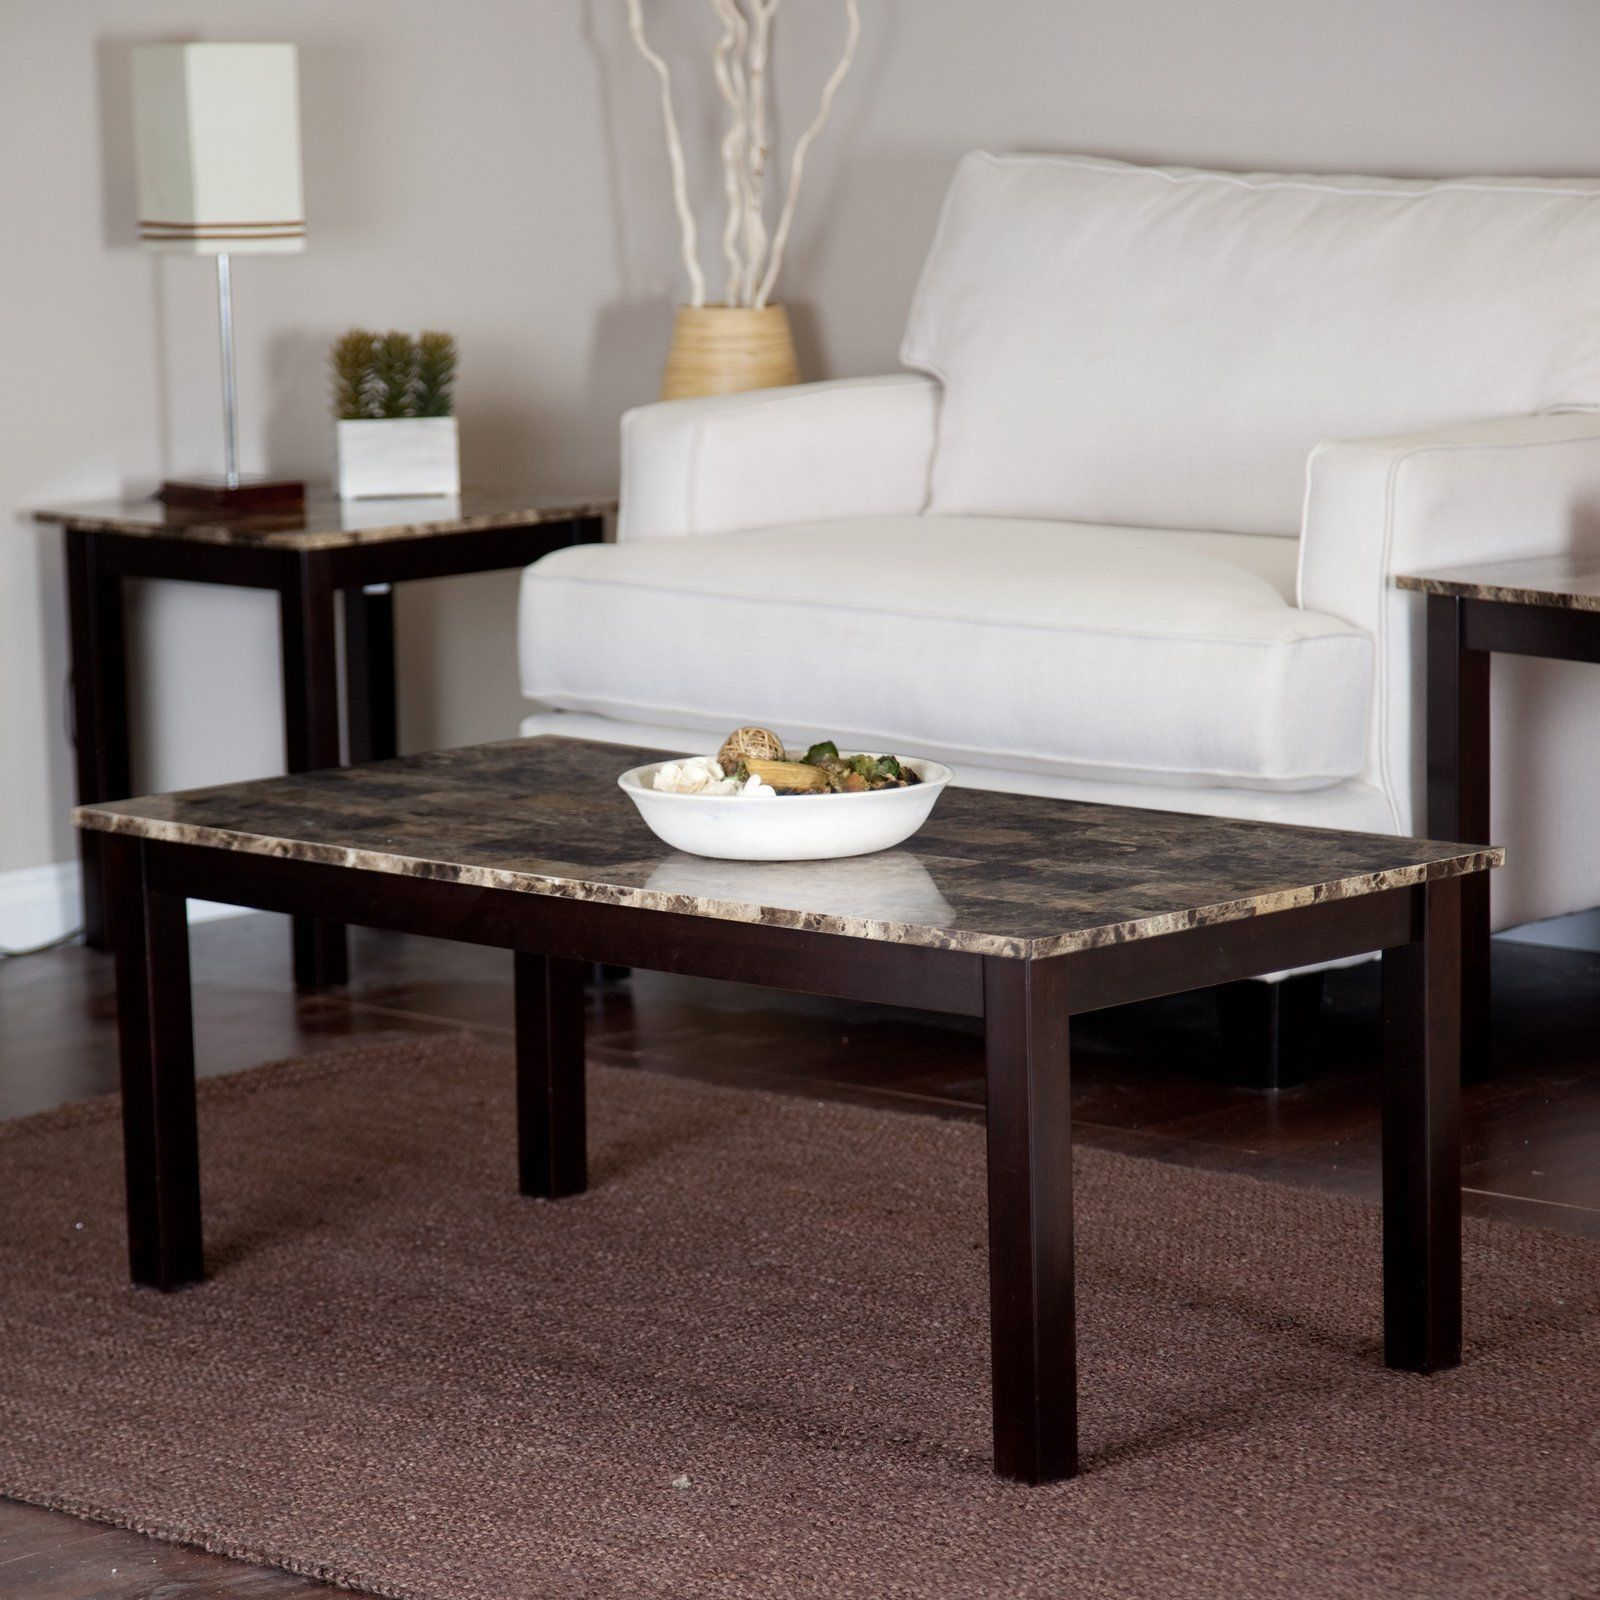 Coffee Table Faux Marble Top Living Room Decor Furniture New